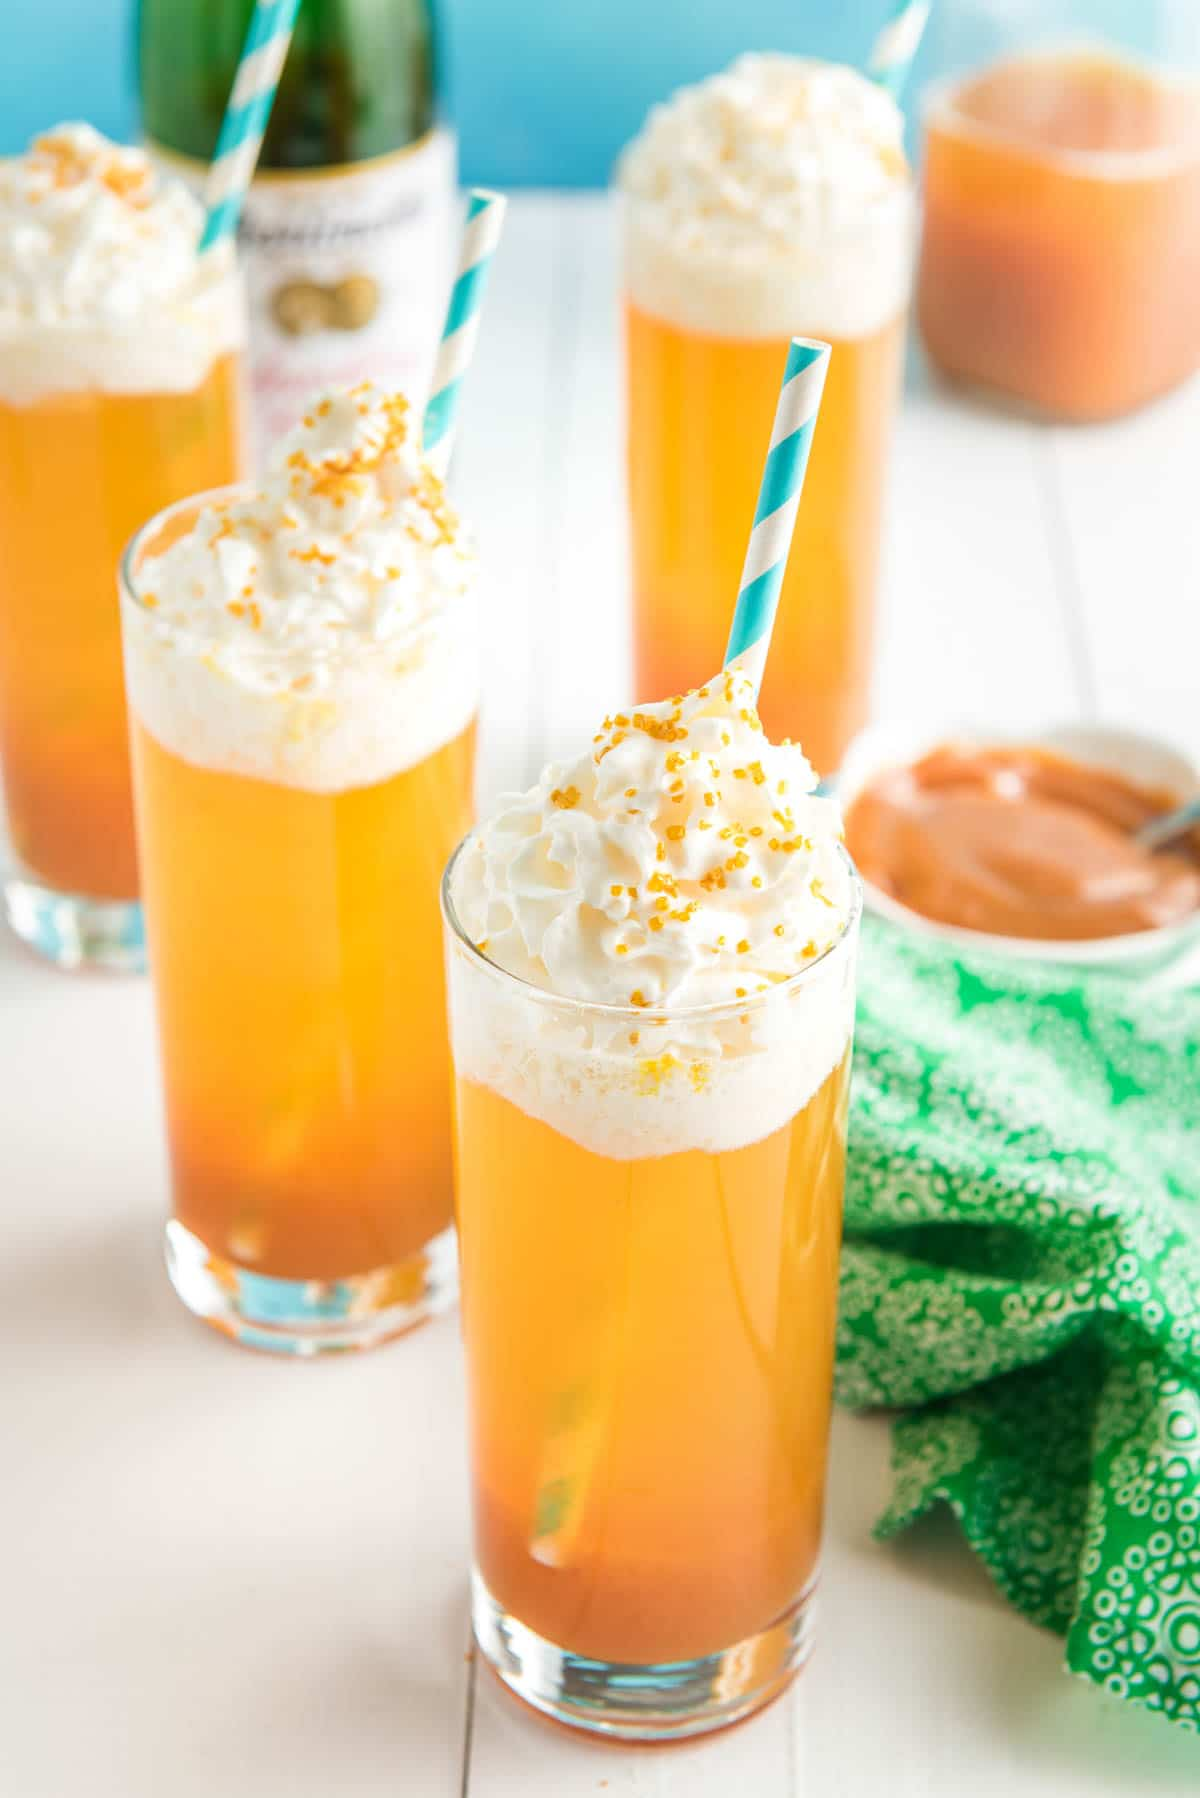 Four glasses with a caramel apple drink topped with whipped cream